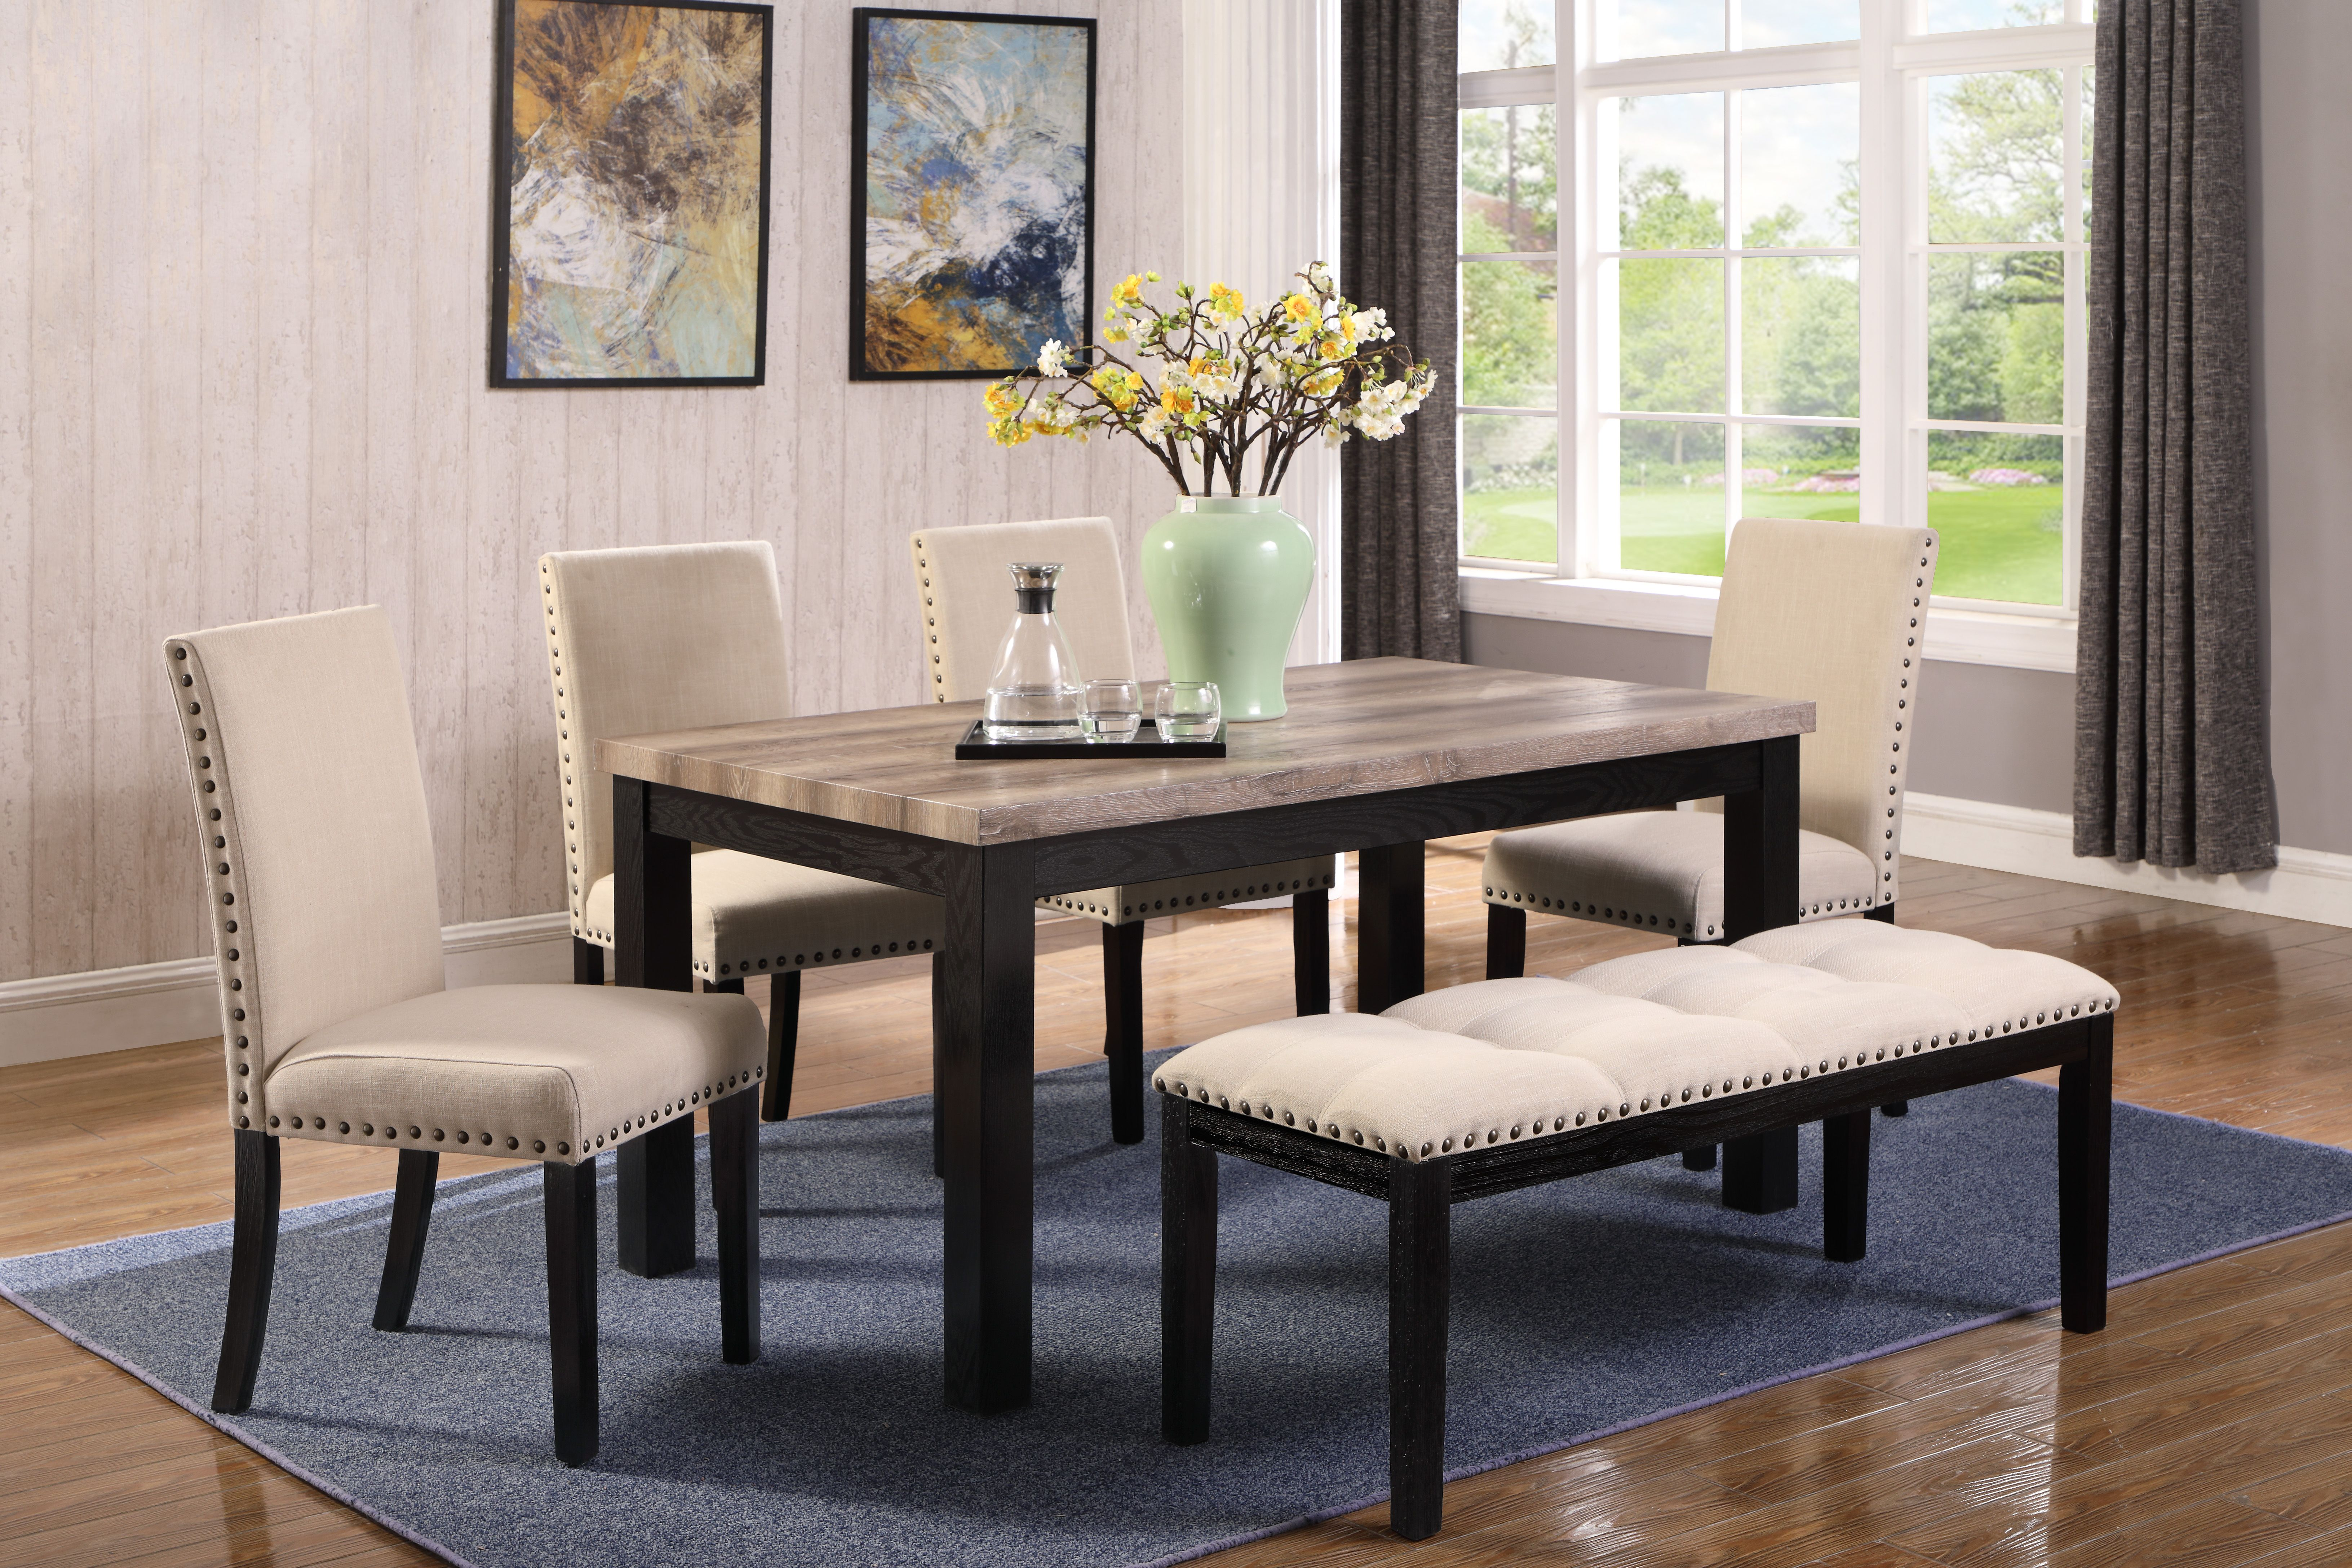 For Quick Family Meals Or Dinner Party Elegance, Check Out